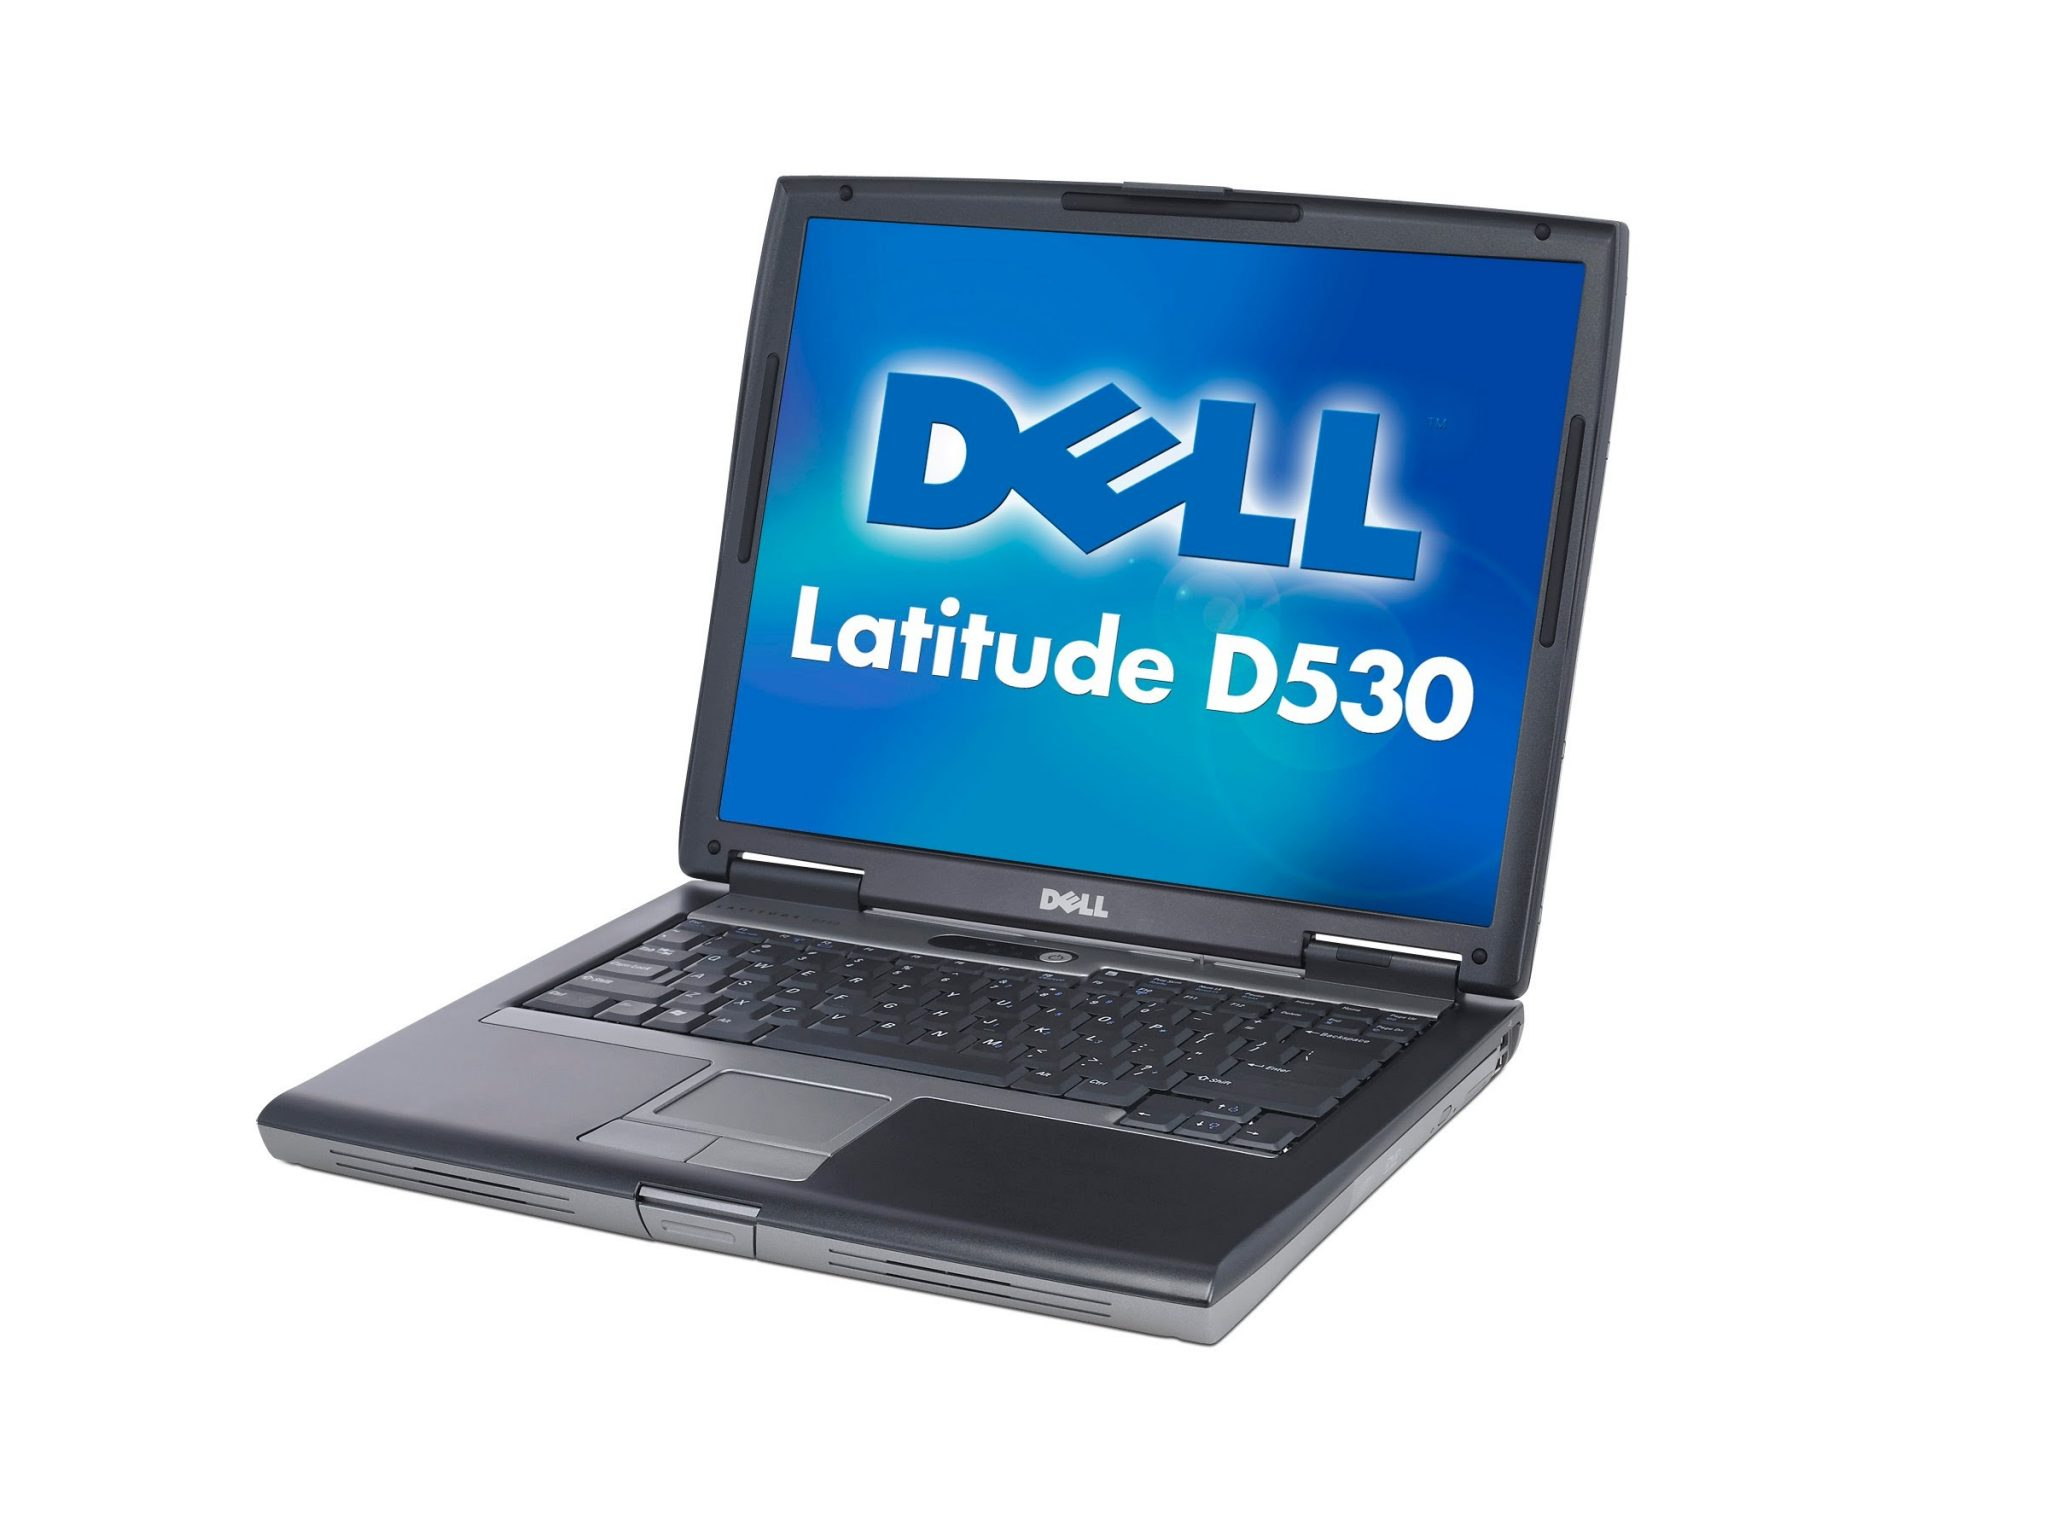 Drivers for Bluetooth devices for Dell Latitude 13 laptops